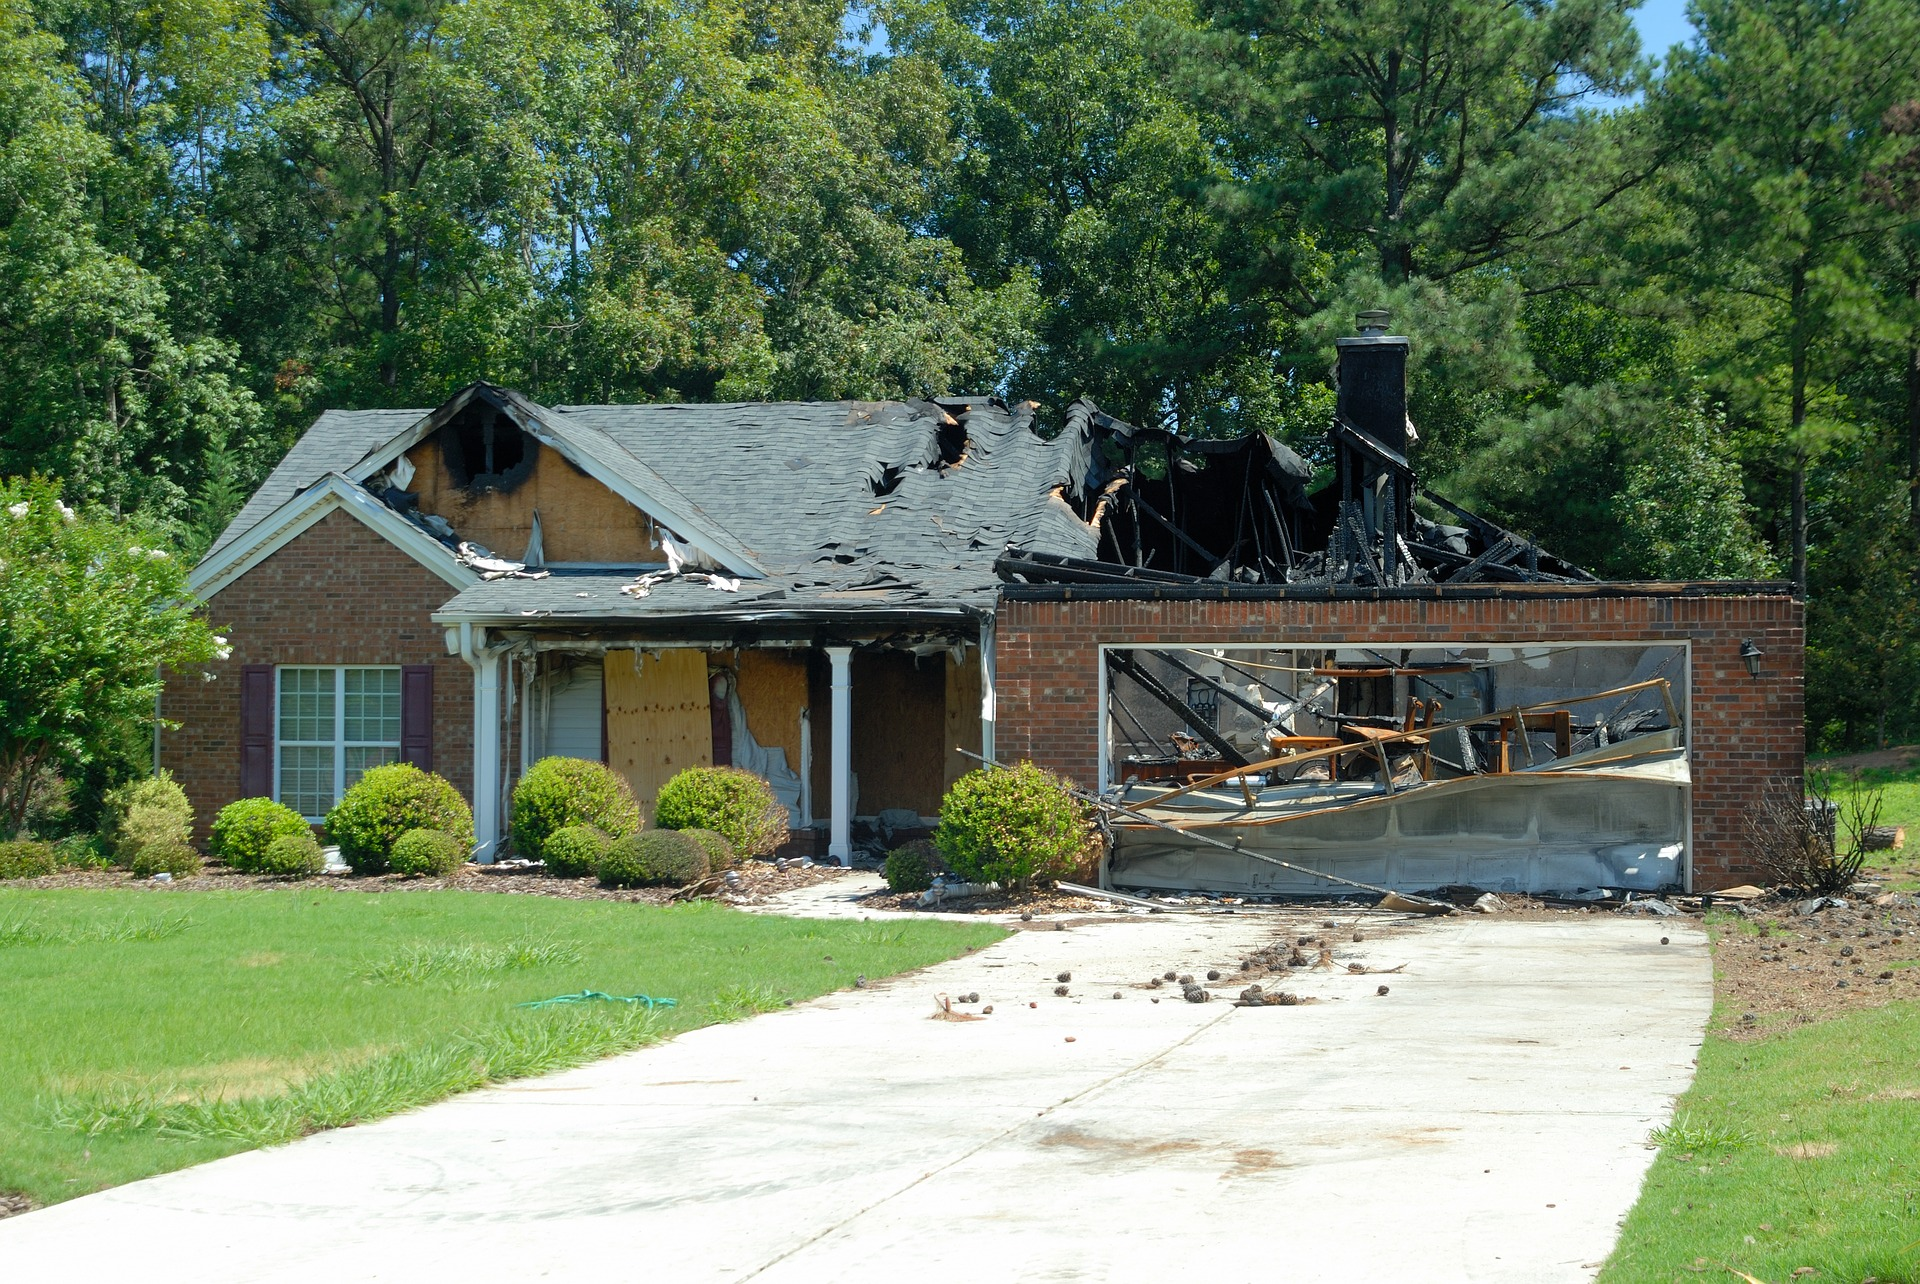 House Fire 1548285 1920 Clear Restoration